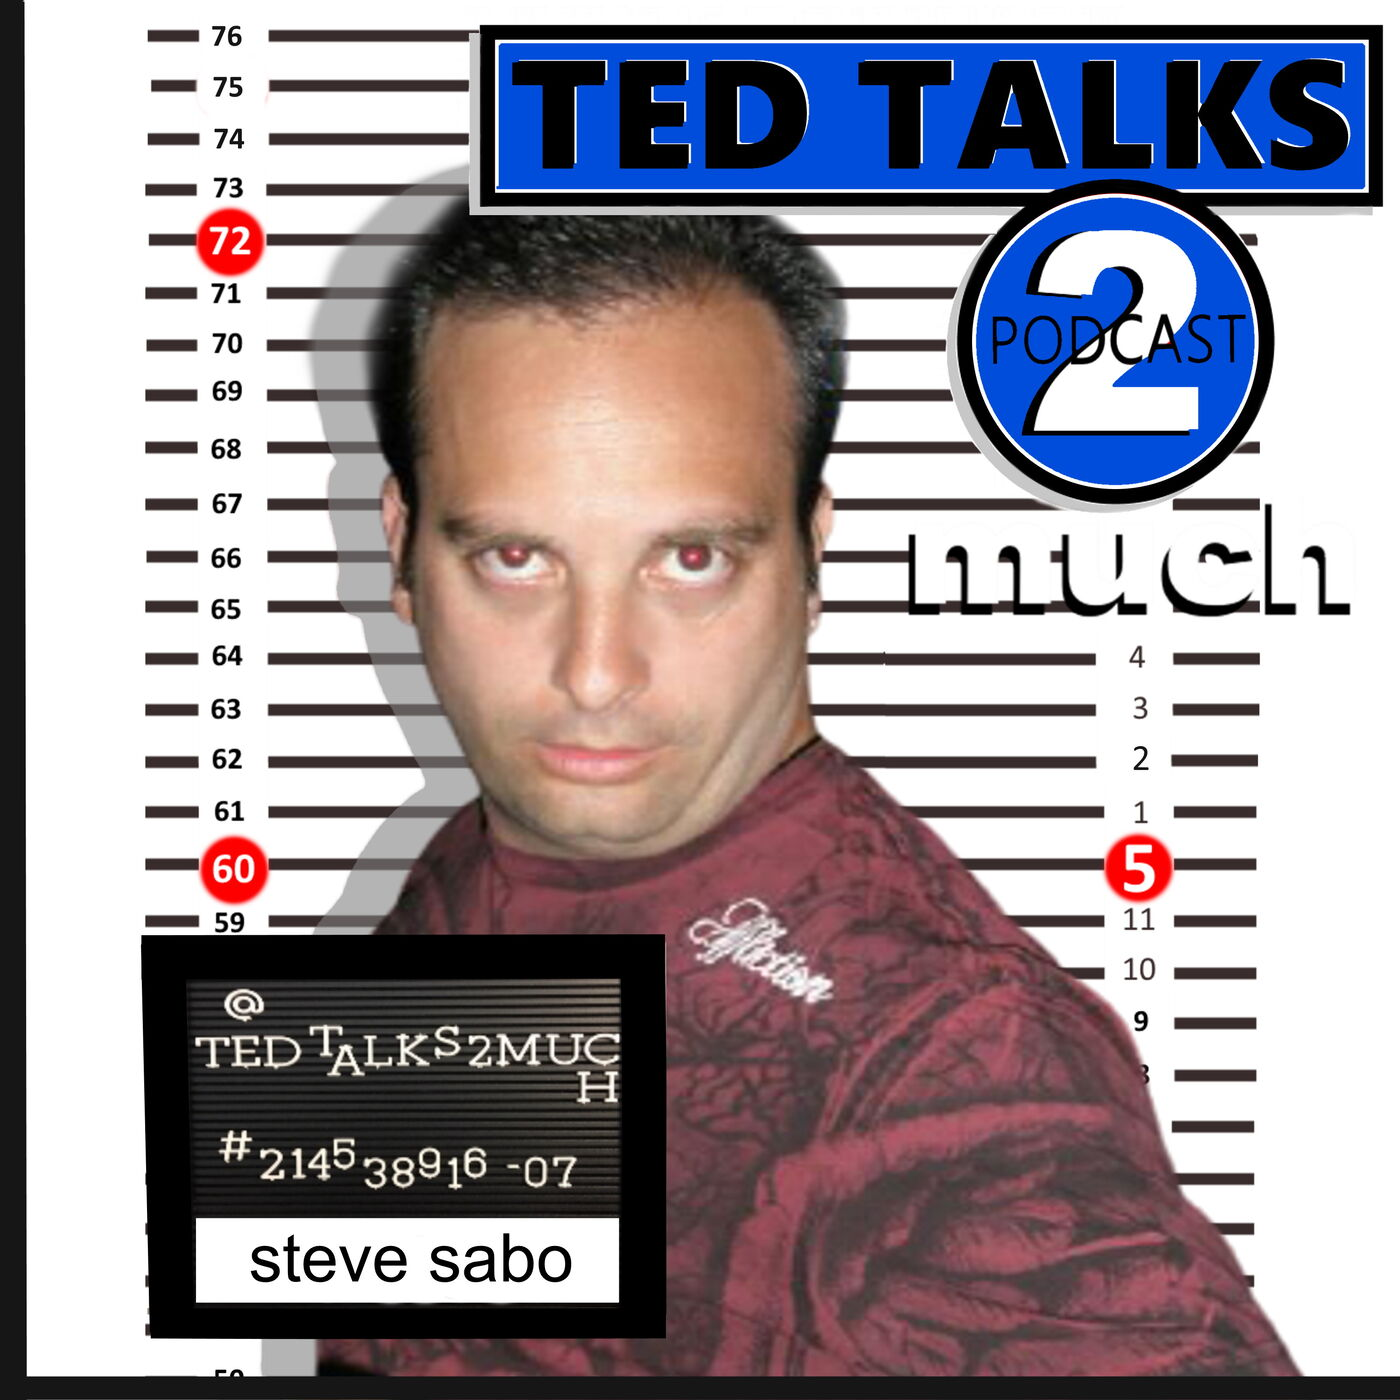 TED TALKS 2 Steve Sabo (too much)... about The Spinning Plates of Comedy, Women Hecklers and Facebook Drama.